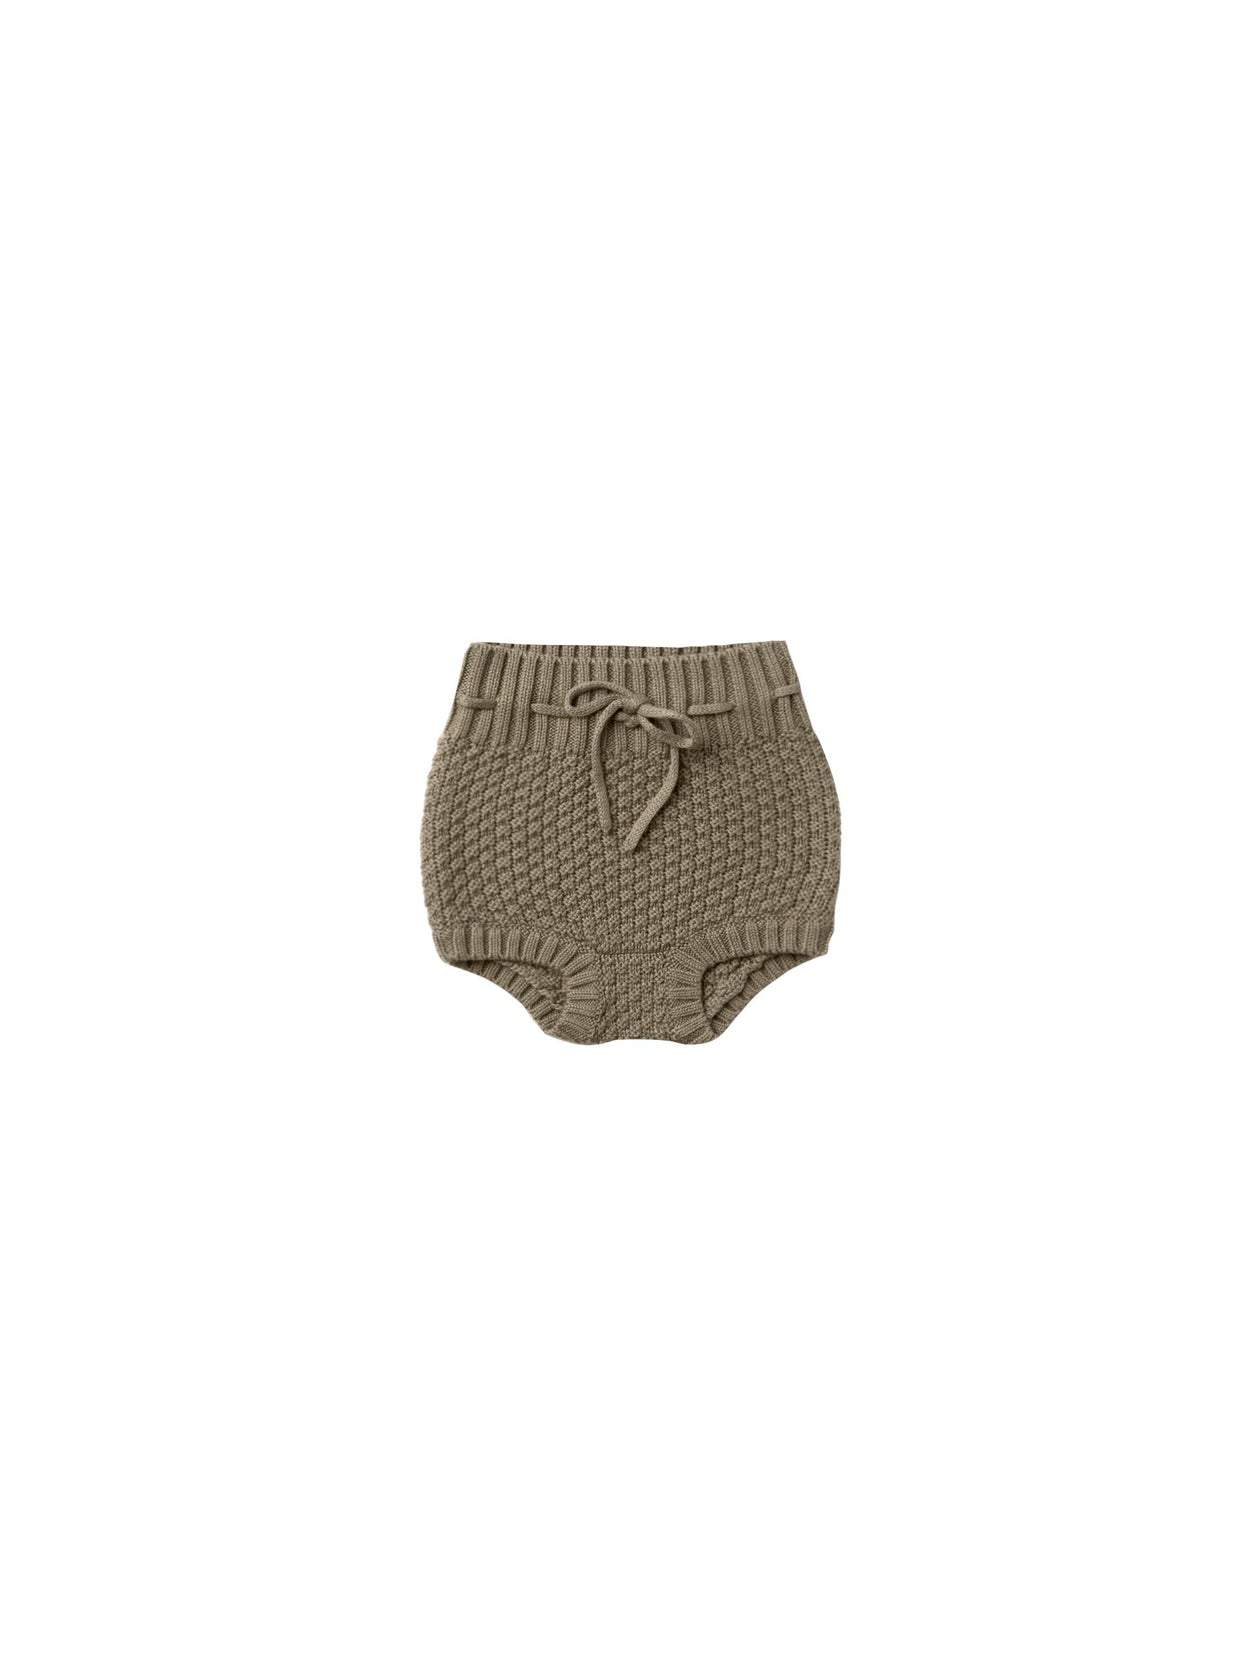 Quincy Mae Knit Tie Bloomer Olive